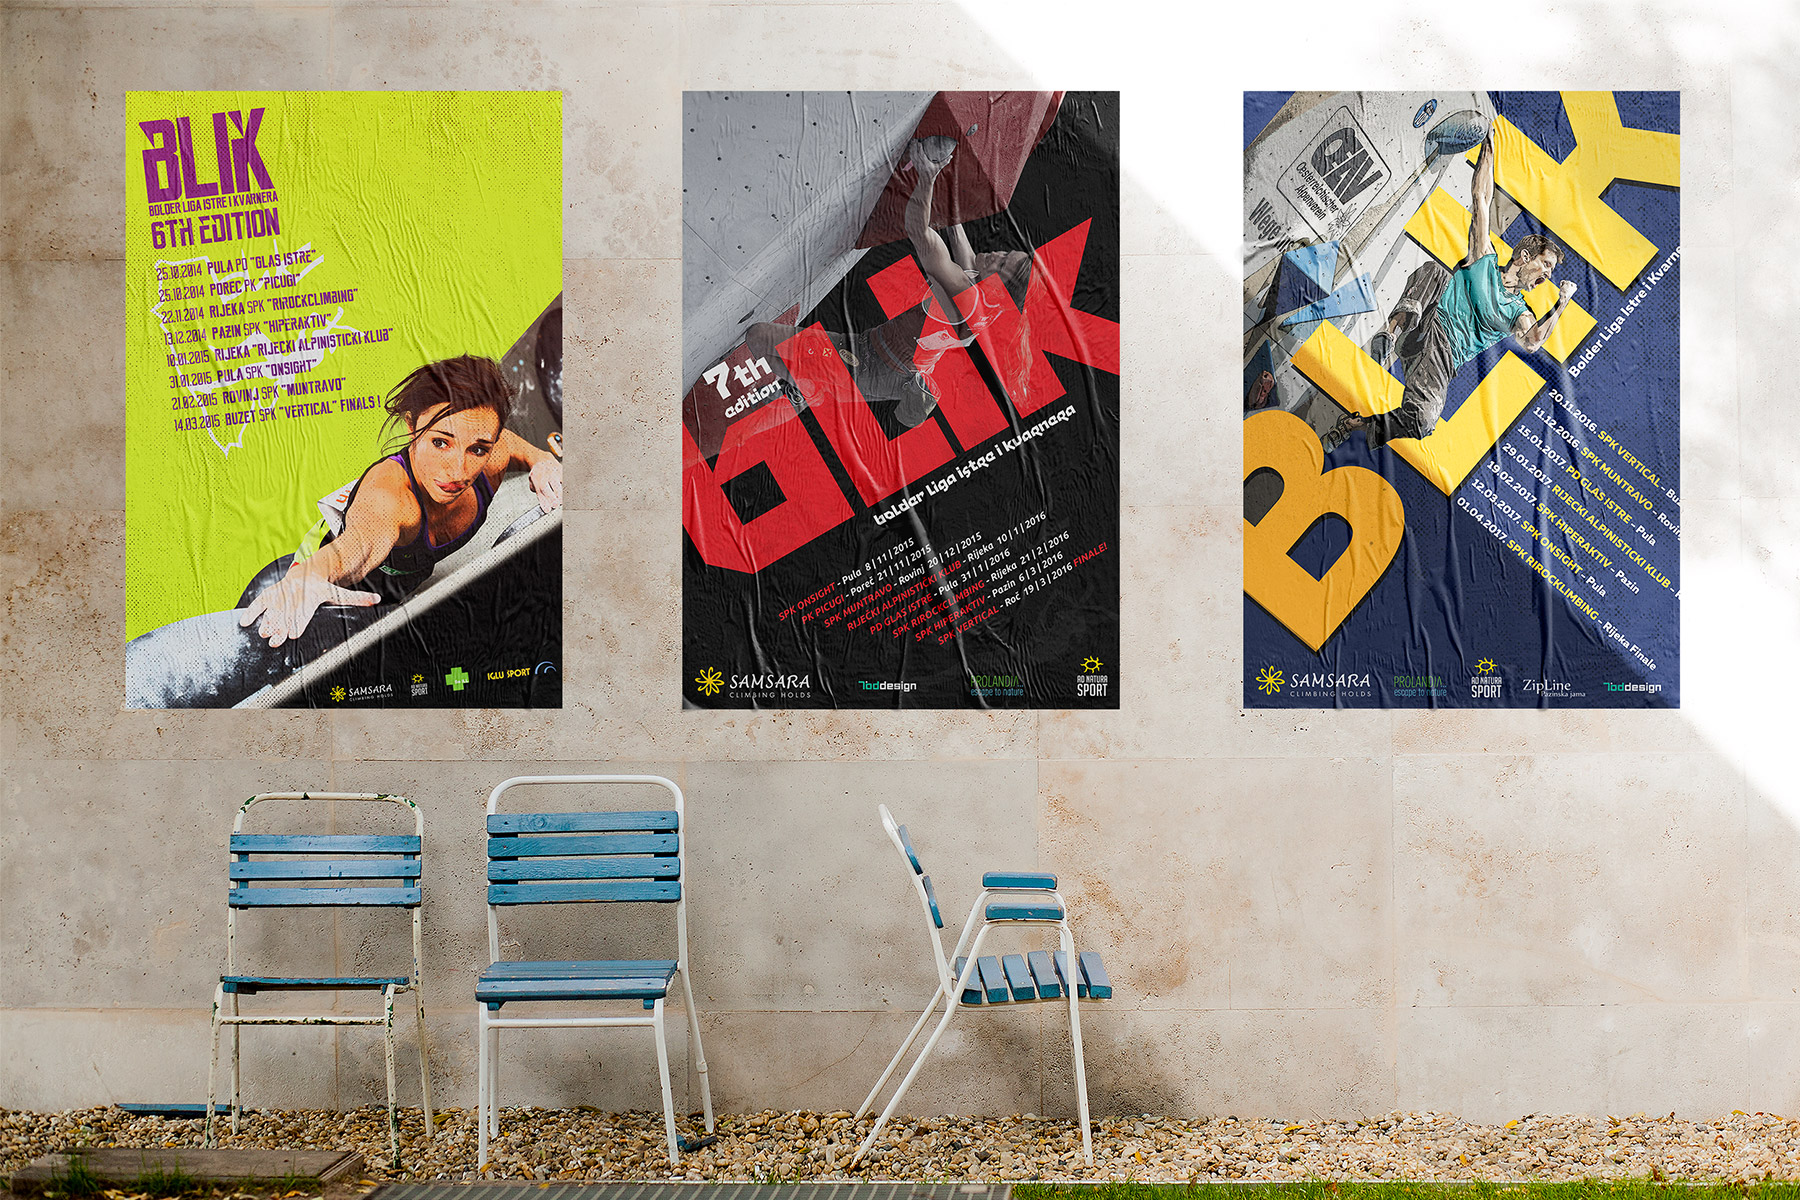 Blik poster artwork